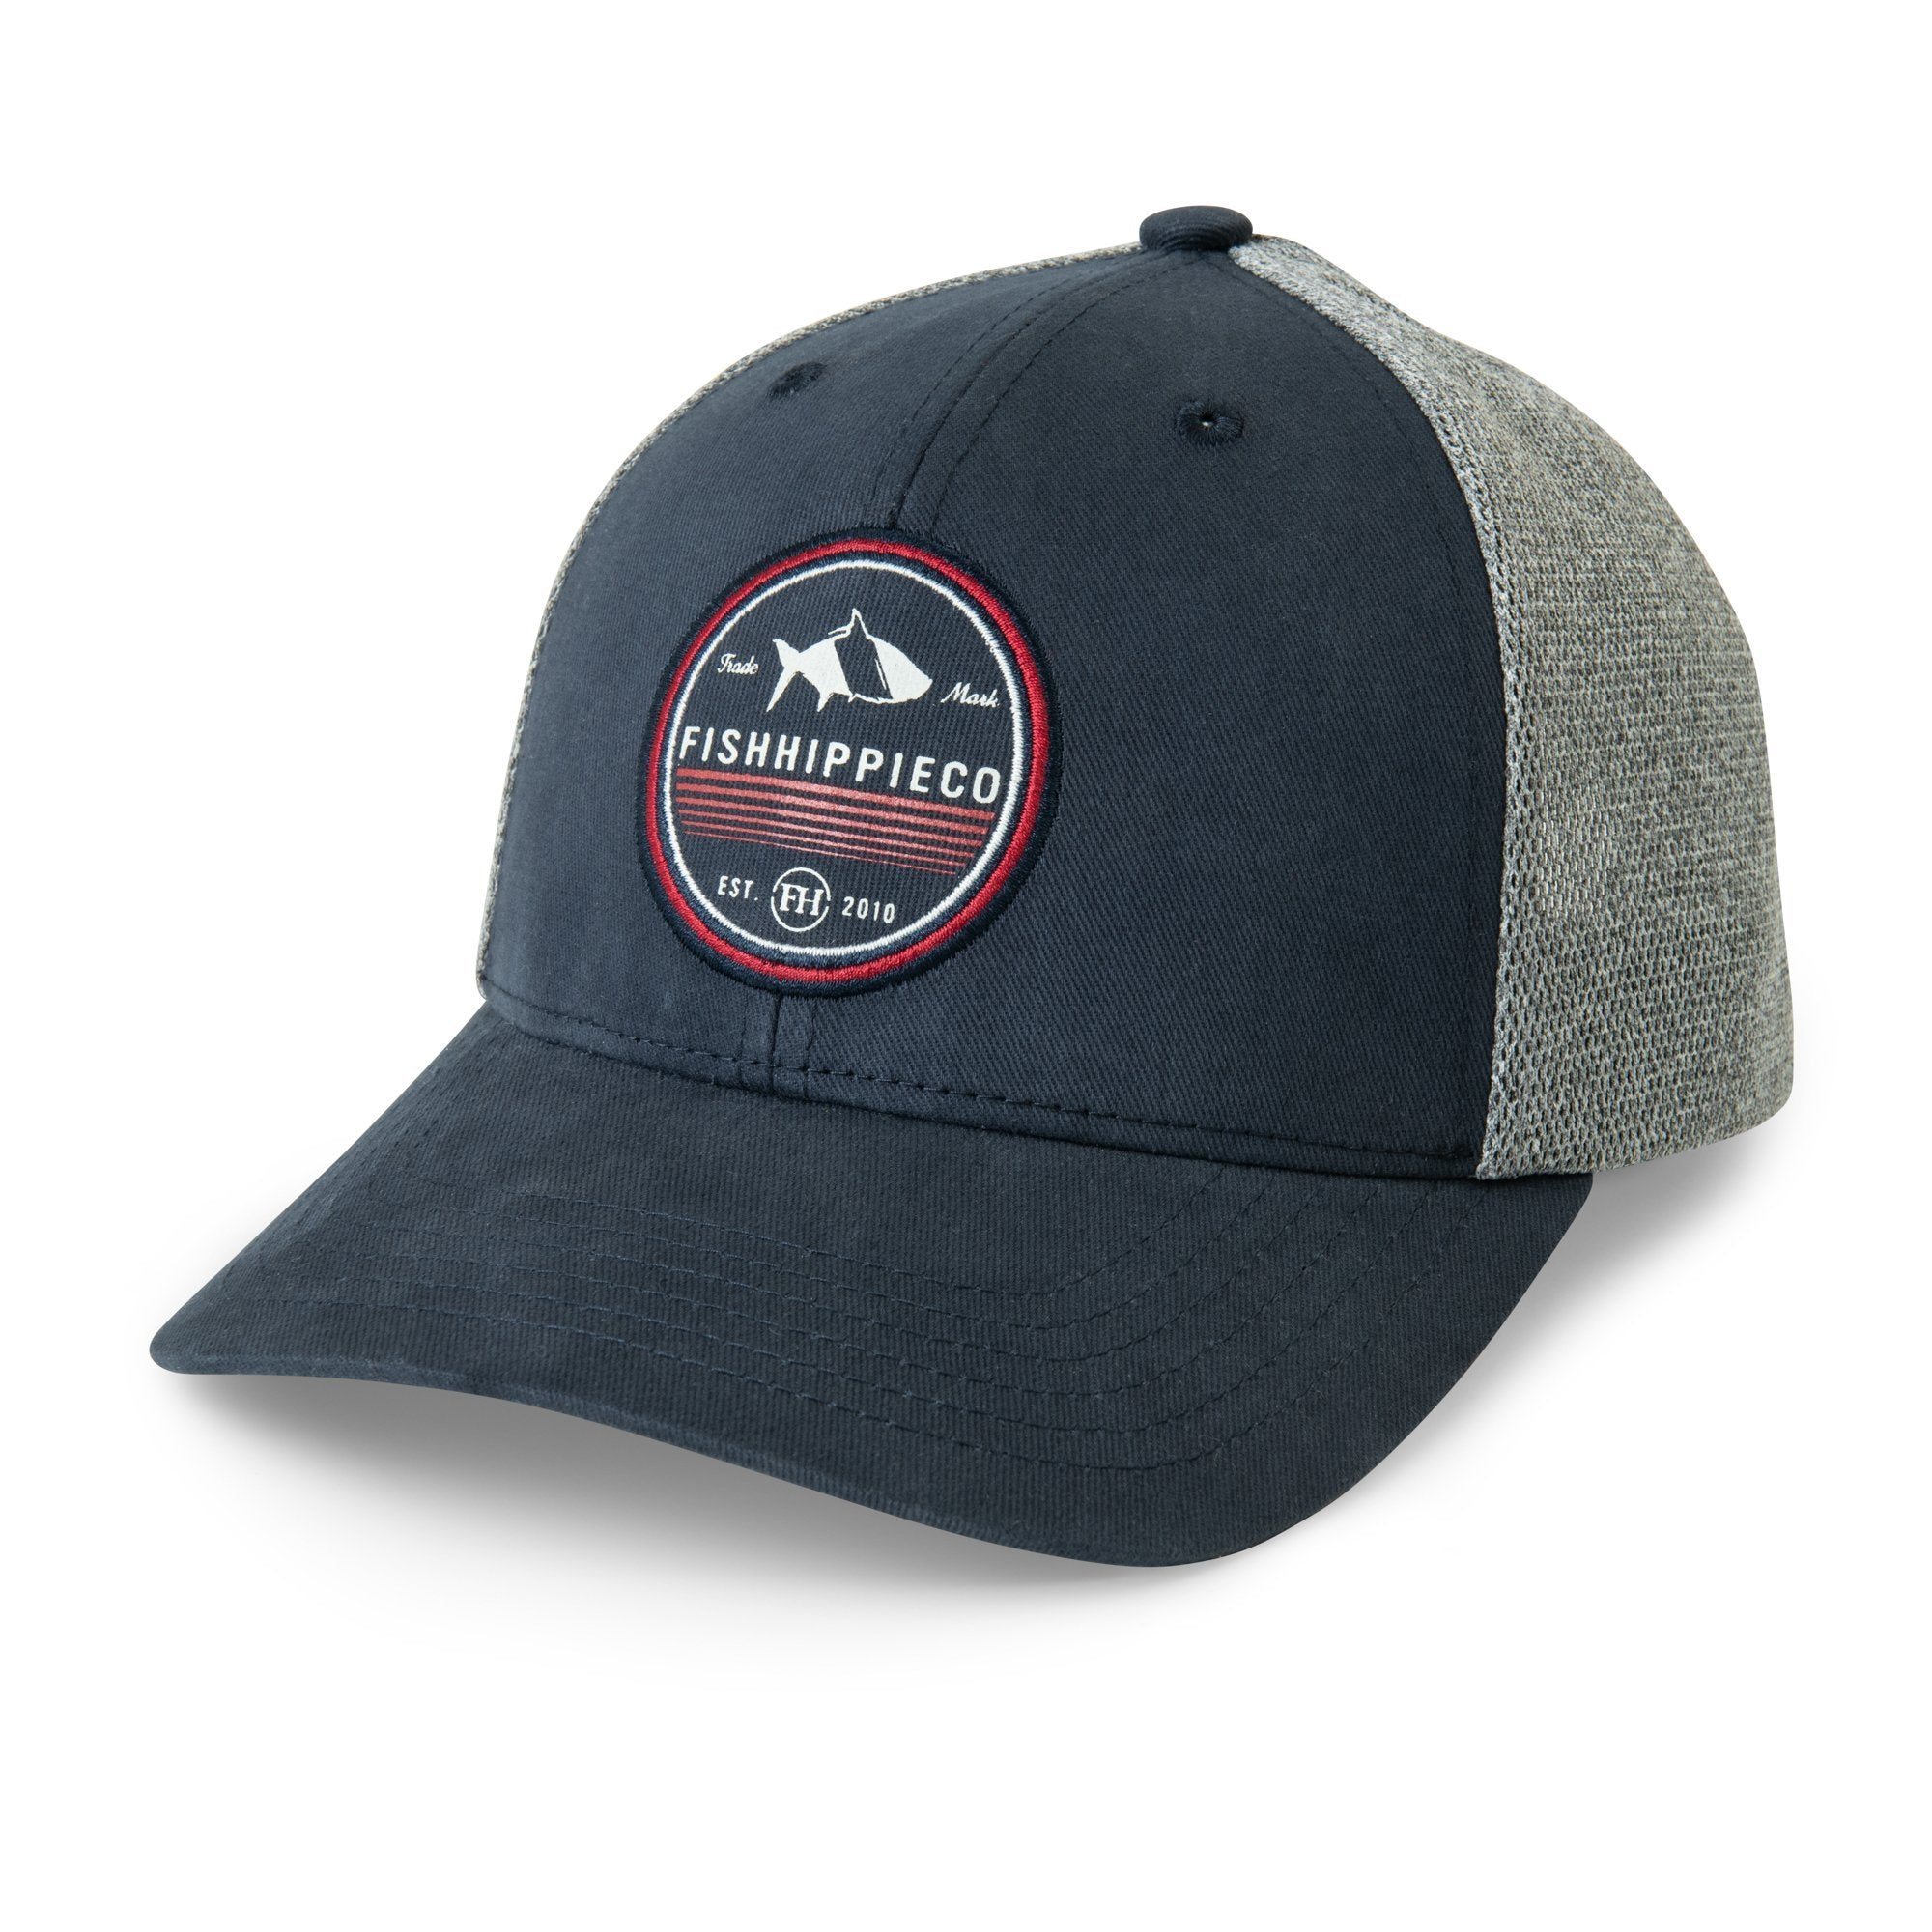 FISH HIPPIE Men's Hats NAVY / one size Fish Hippie Motion Granted Trucker Hat || David's Clothing FHH5040